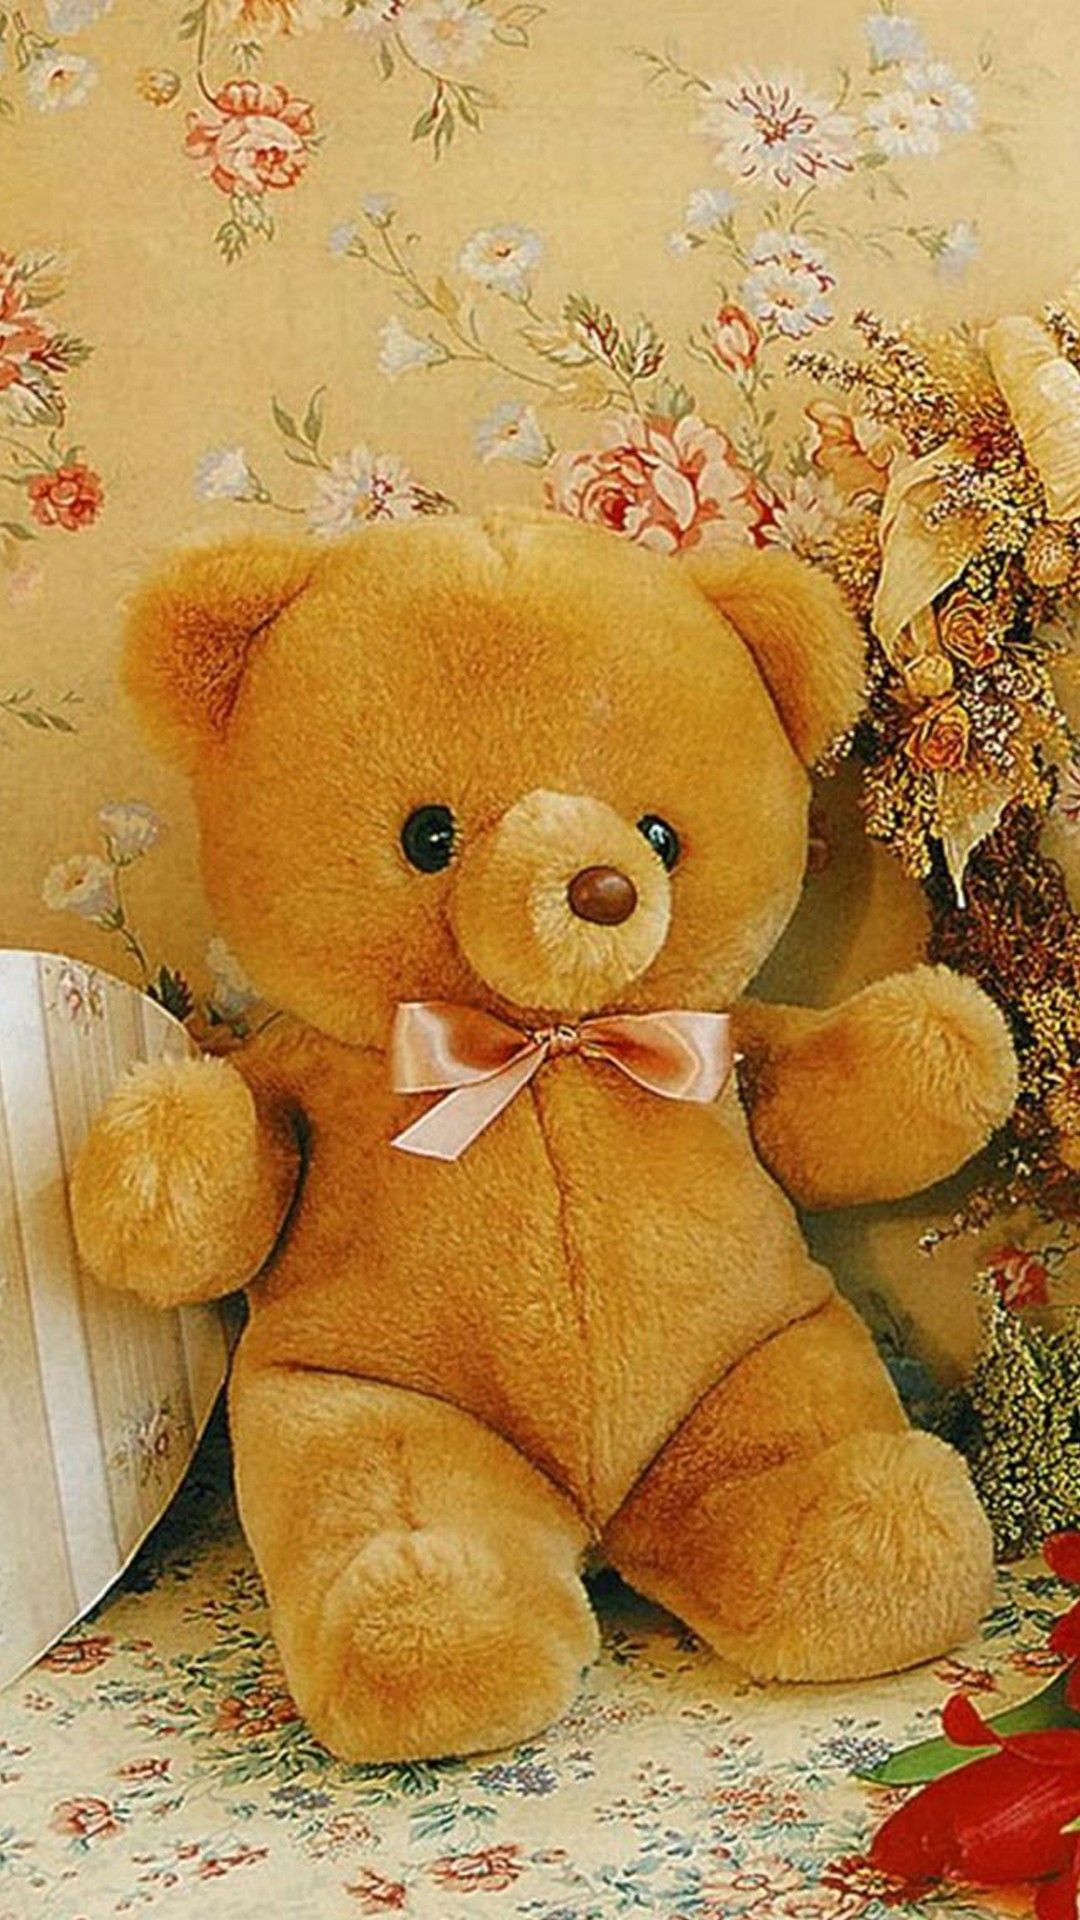 Big Teddy Bear Wallpaper For Android